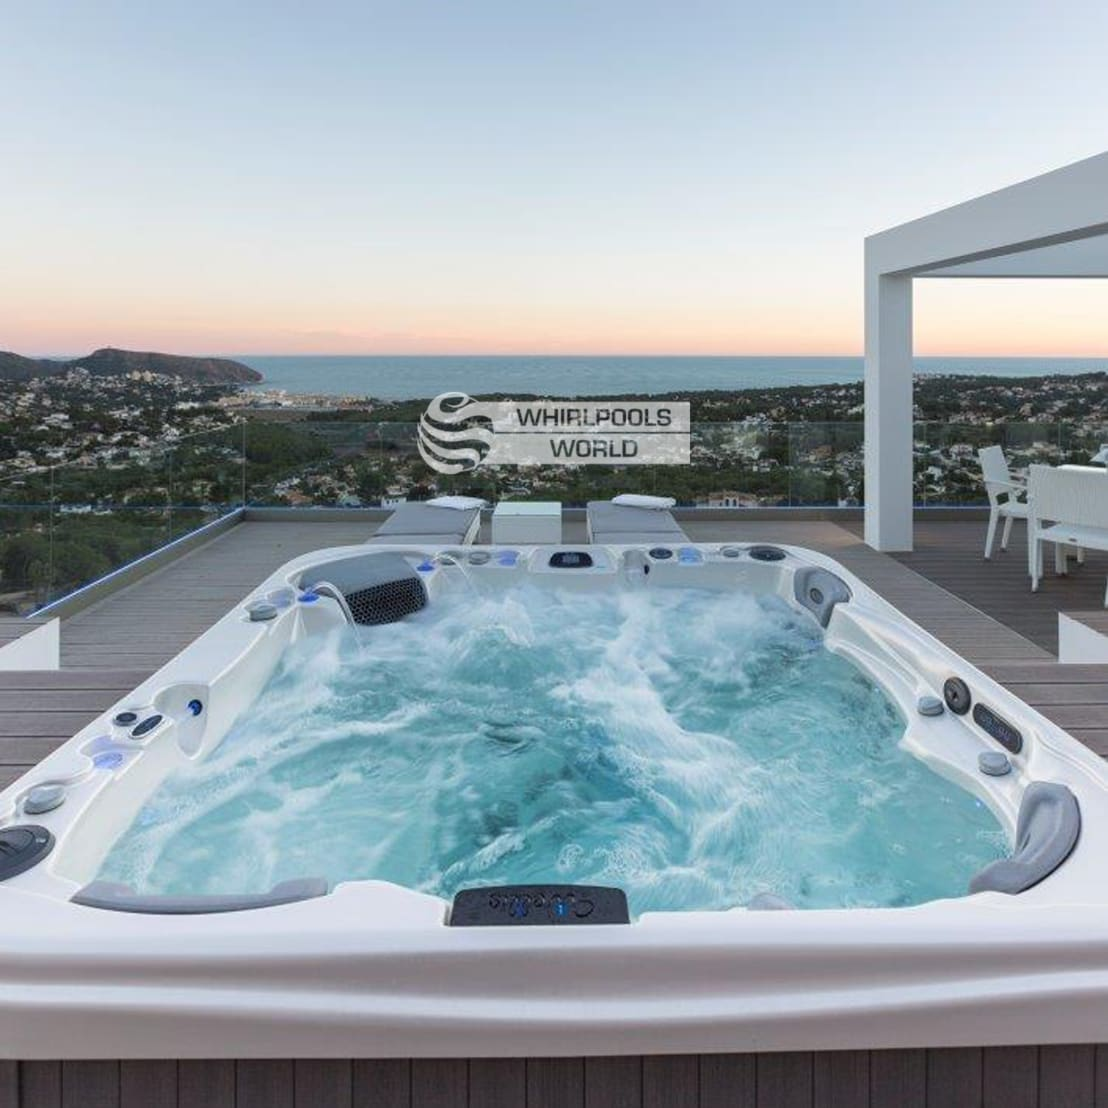 outdoor whirlpools von whirlpools world de whirlpools world homify. Black Bedroom Furniture Sets. Home Design Ideas